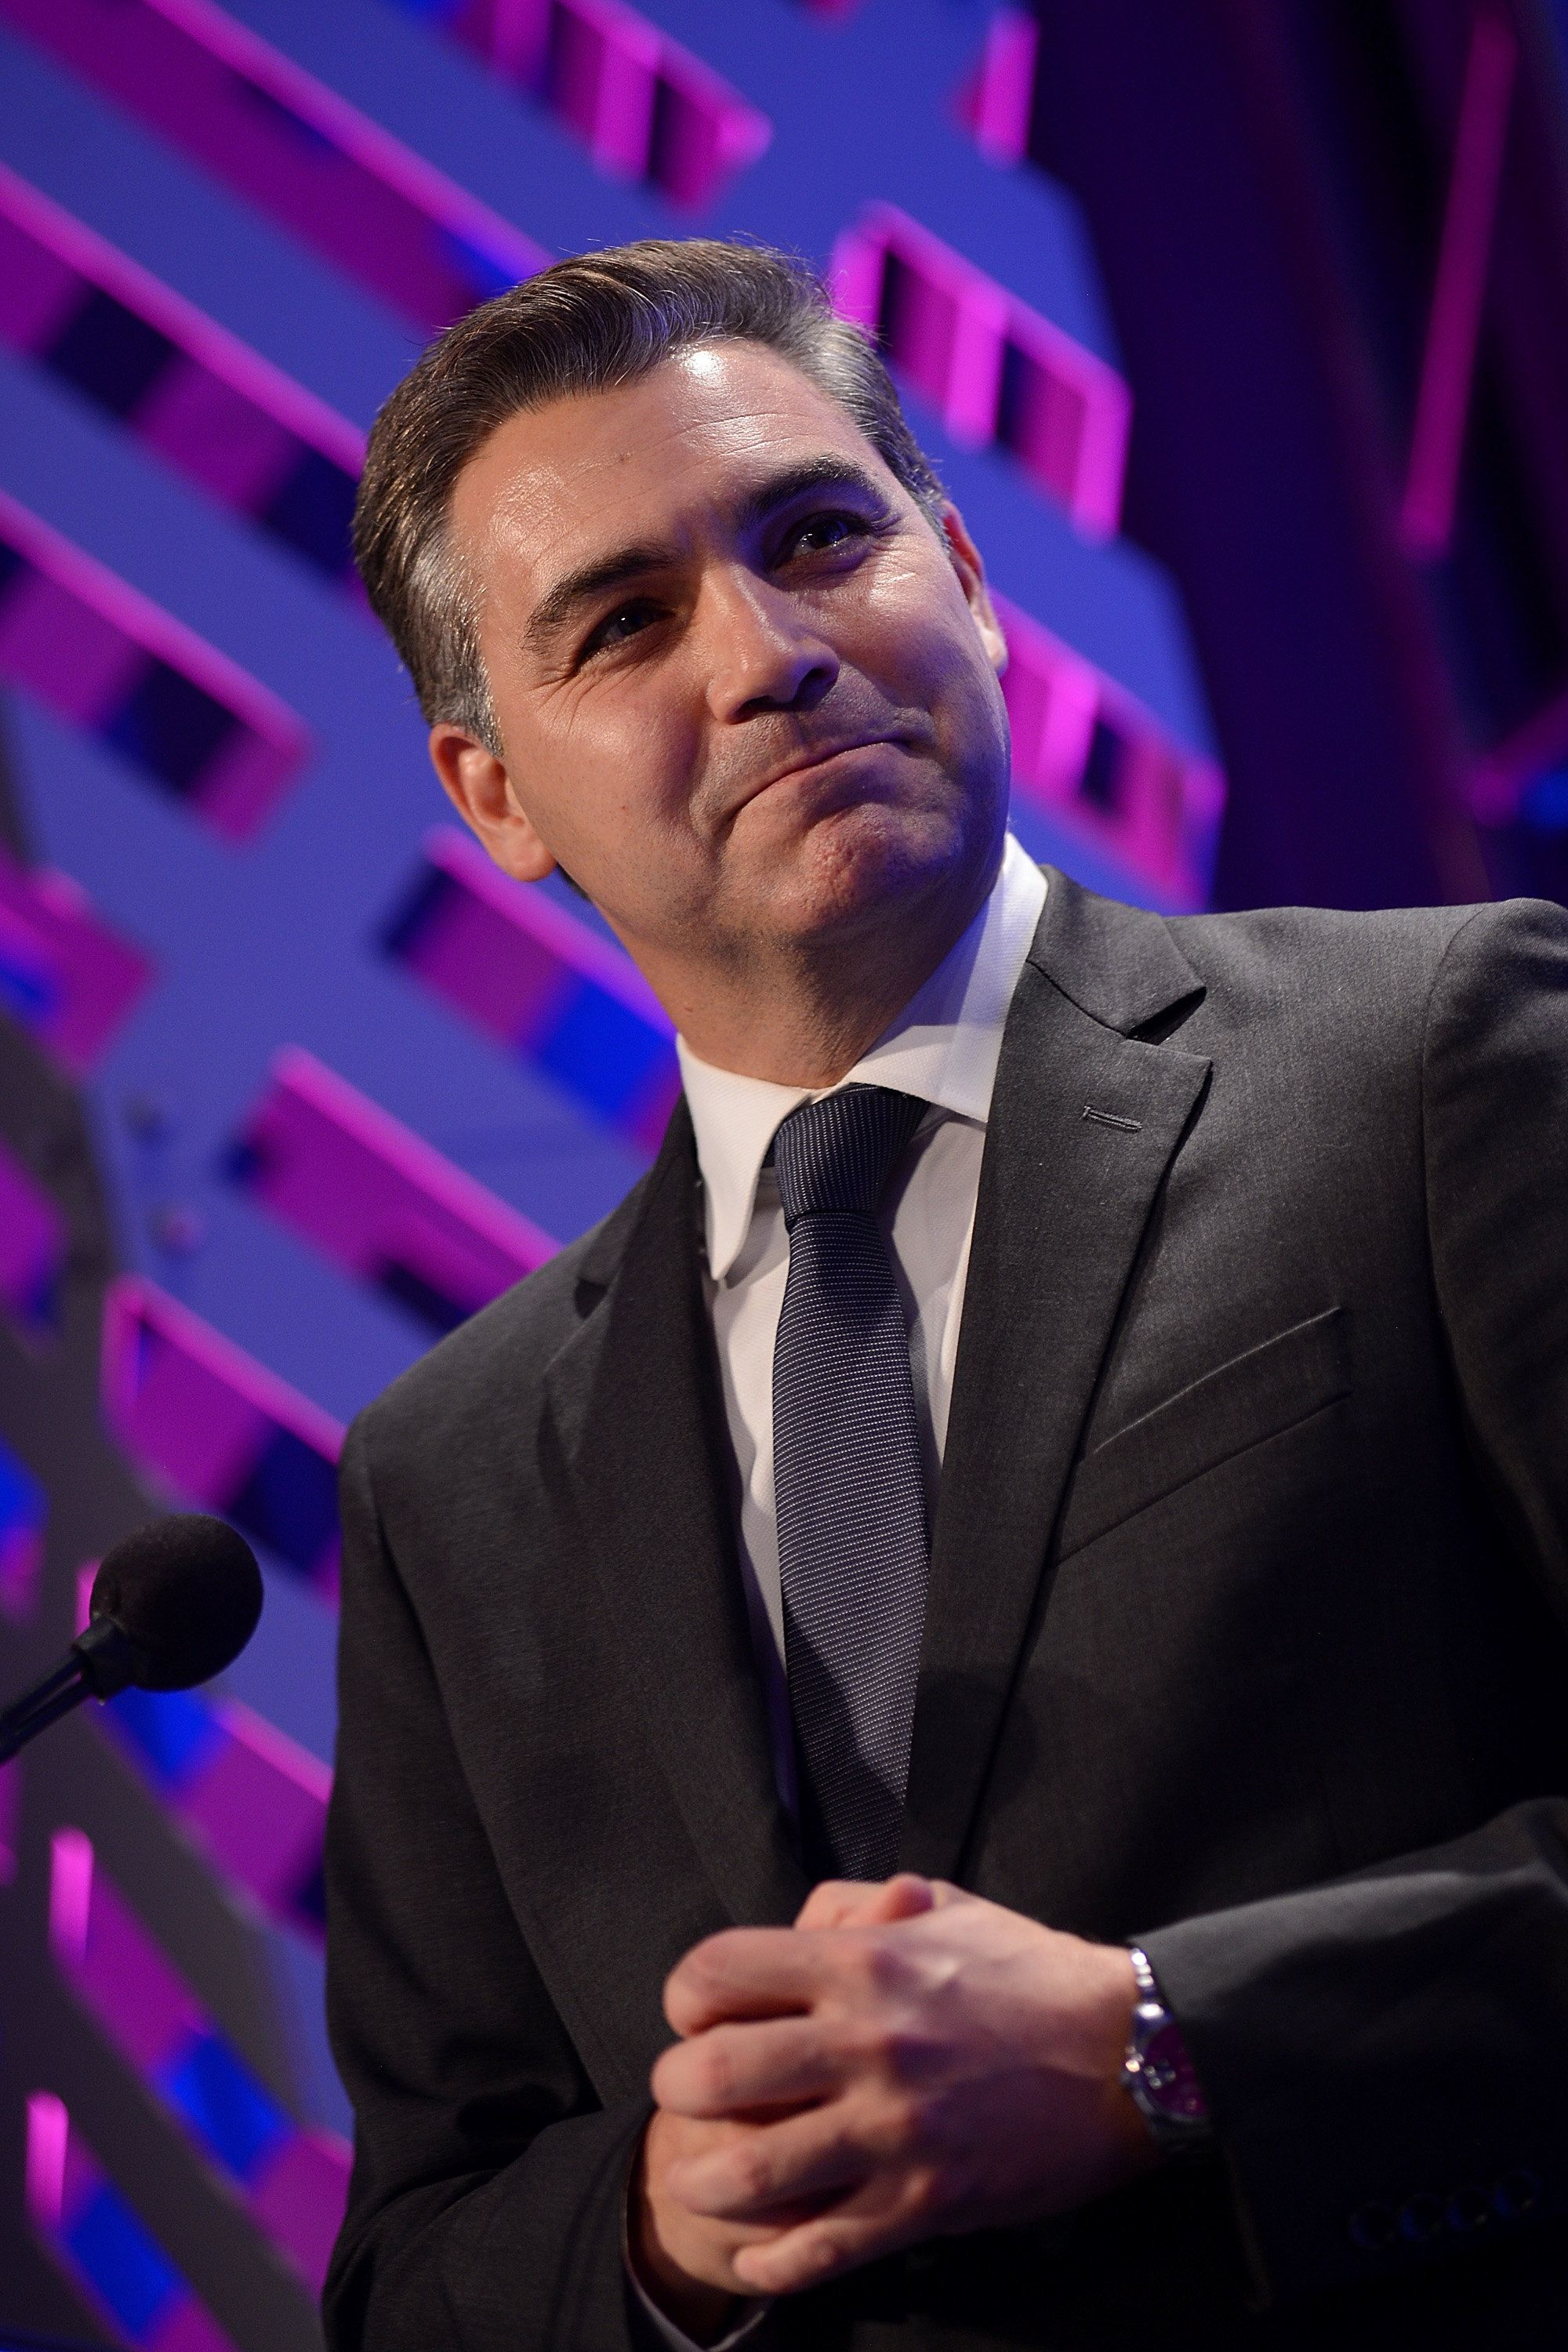 A judge ruled in favor of CNN and reporter Jim Acosta.